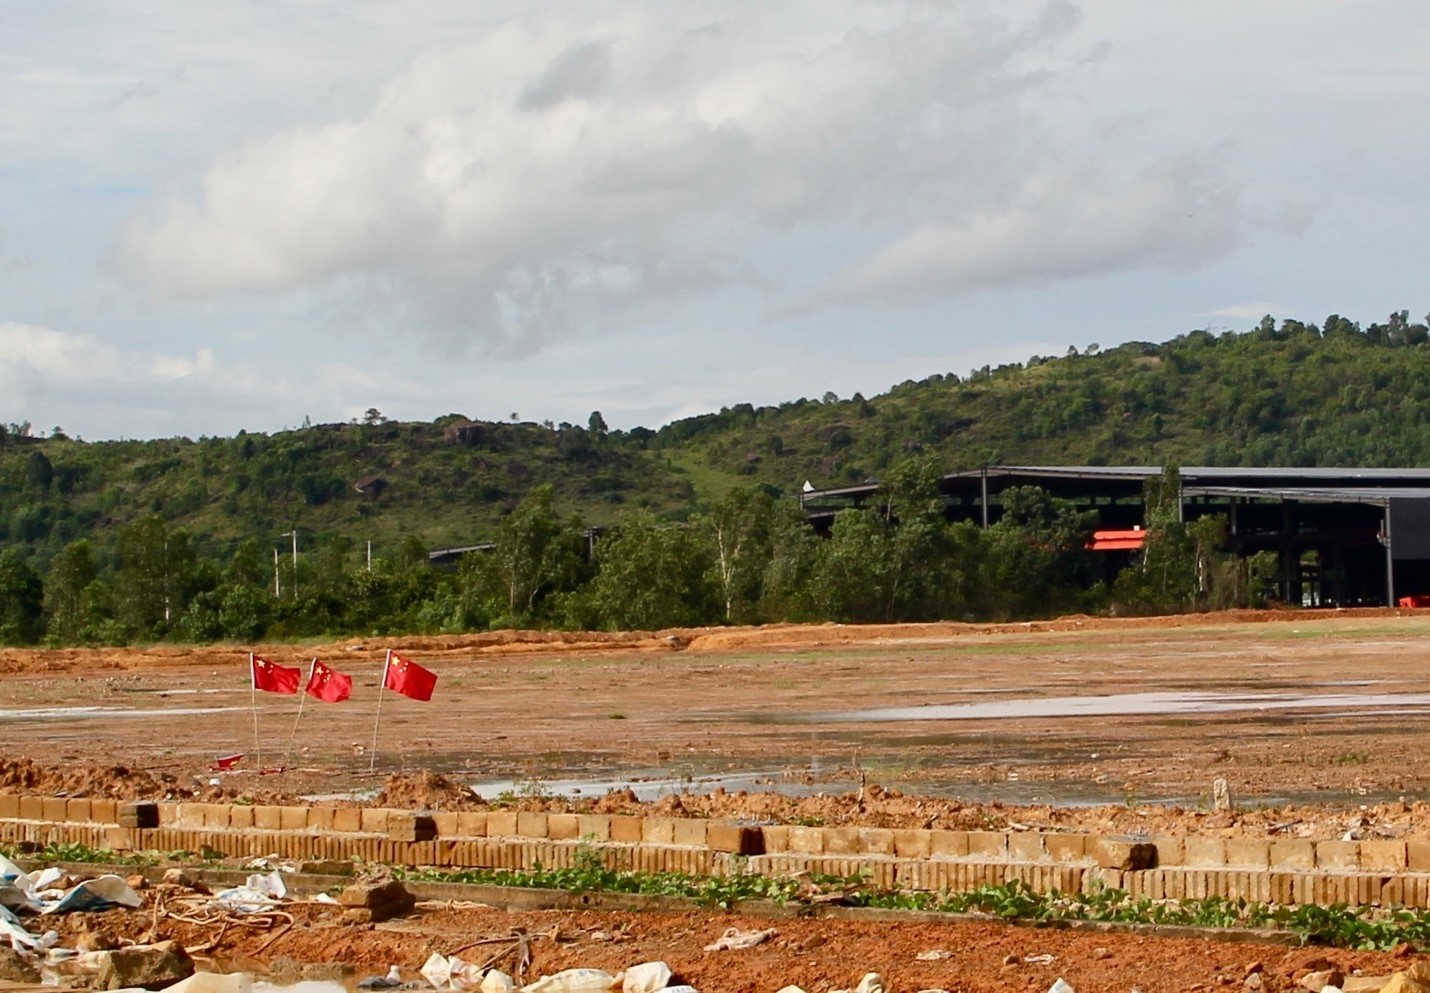 Chinese flags fly over an industrial lot under development in Sihanoukville (Image: Lili Pike)